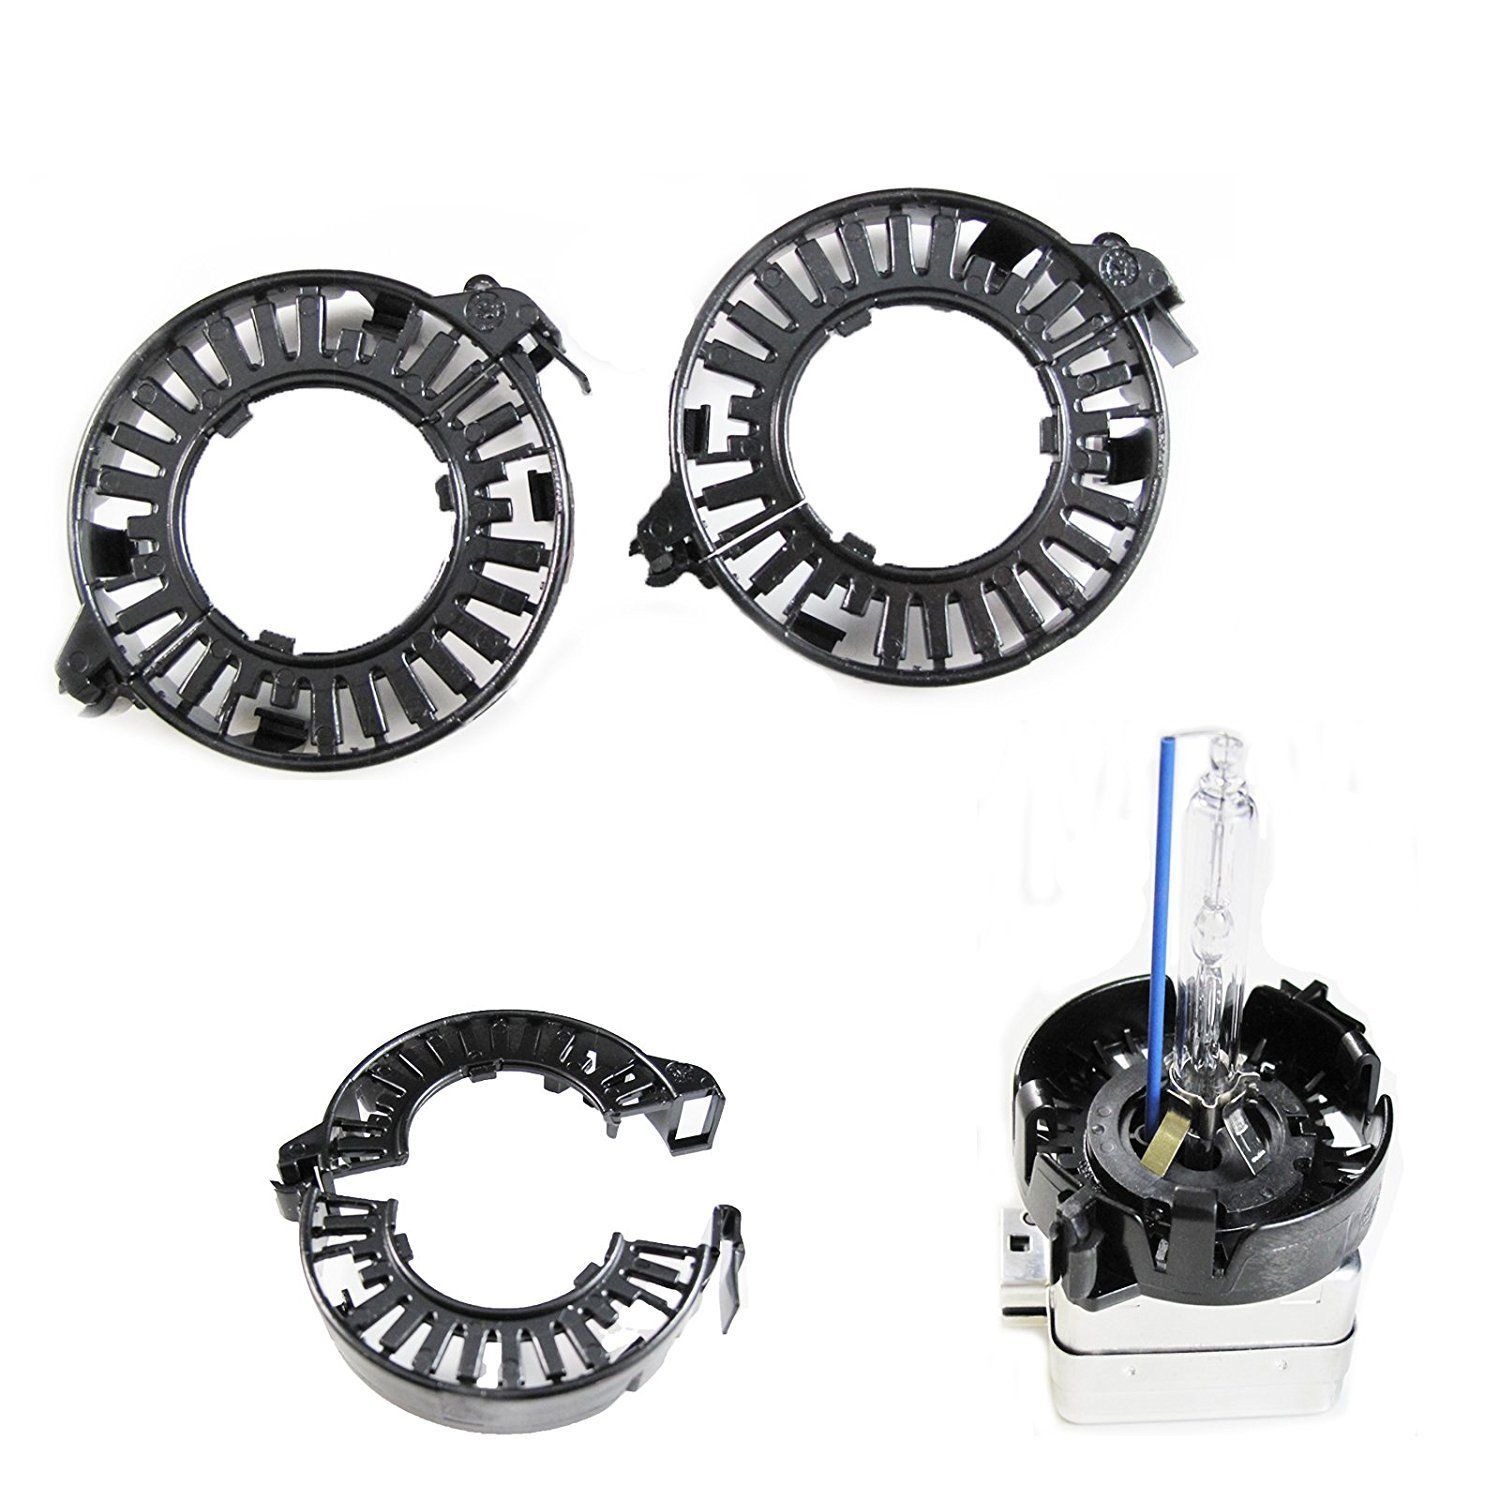 Xotic Tech 1 pair D1S D3S HID Bulbs Holders Clip Rings Retainers for Audi BMW Mercedes Cadillac Lincoln Jaguar, etc Xotic Tech Direct